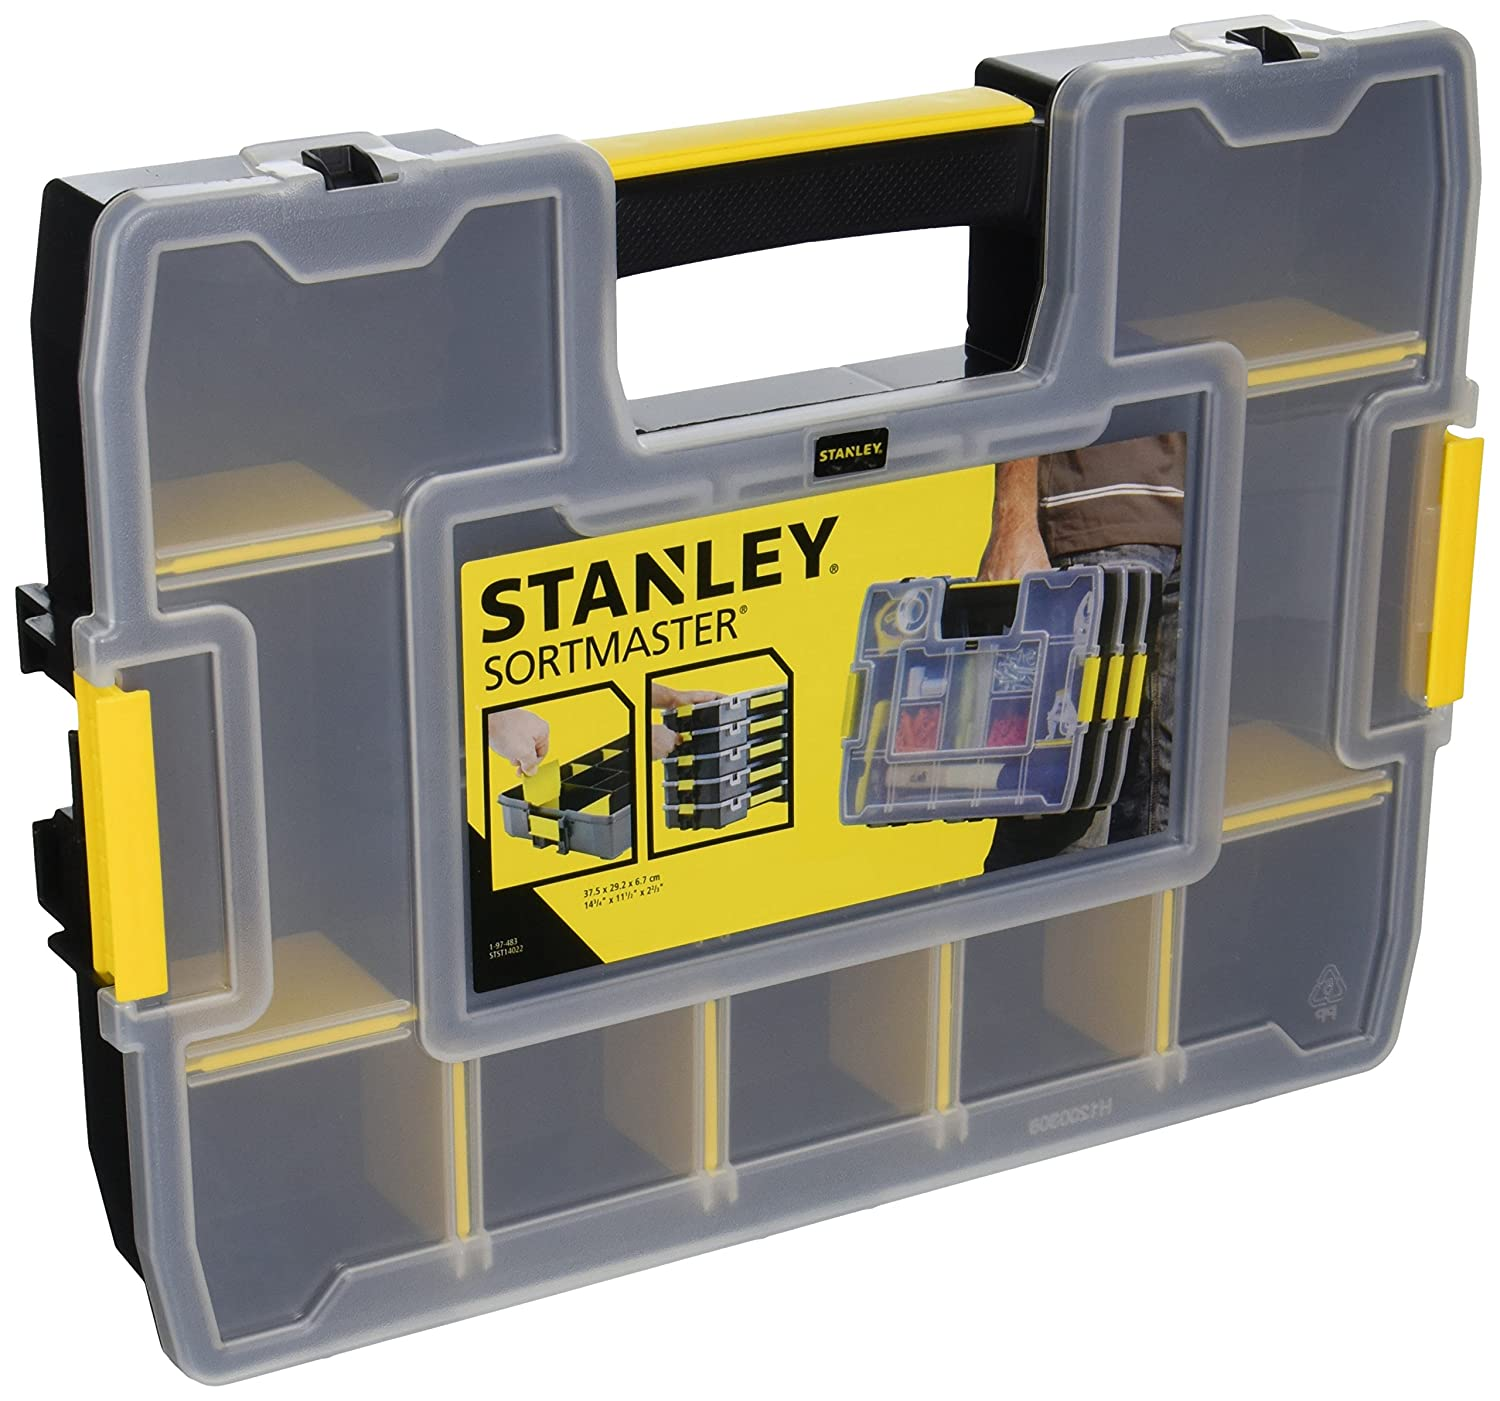 Garage Parts In A Box : Tool box organizer portable garage storage cabinet small